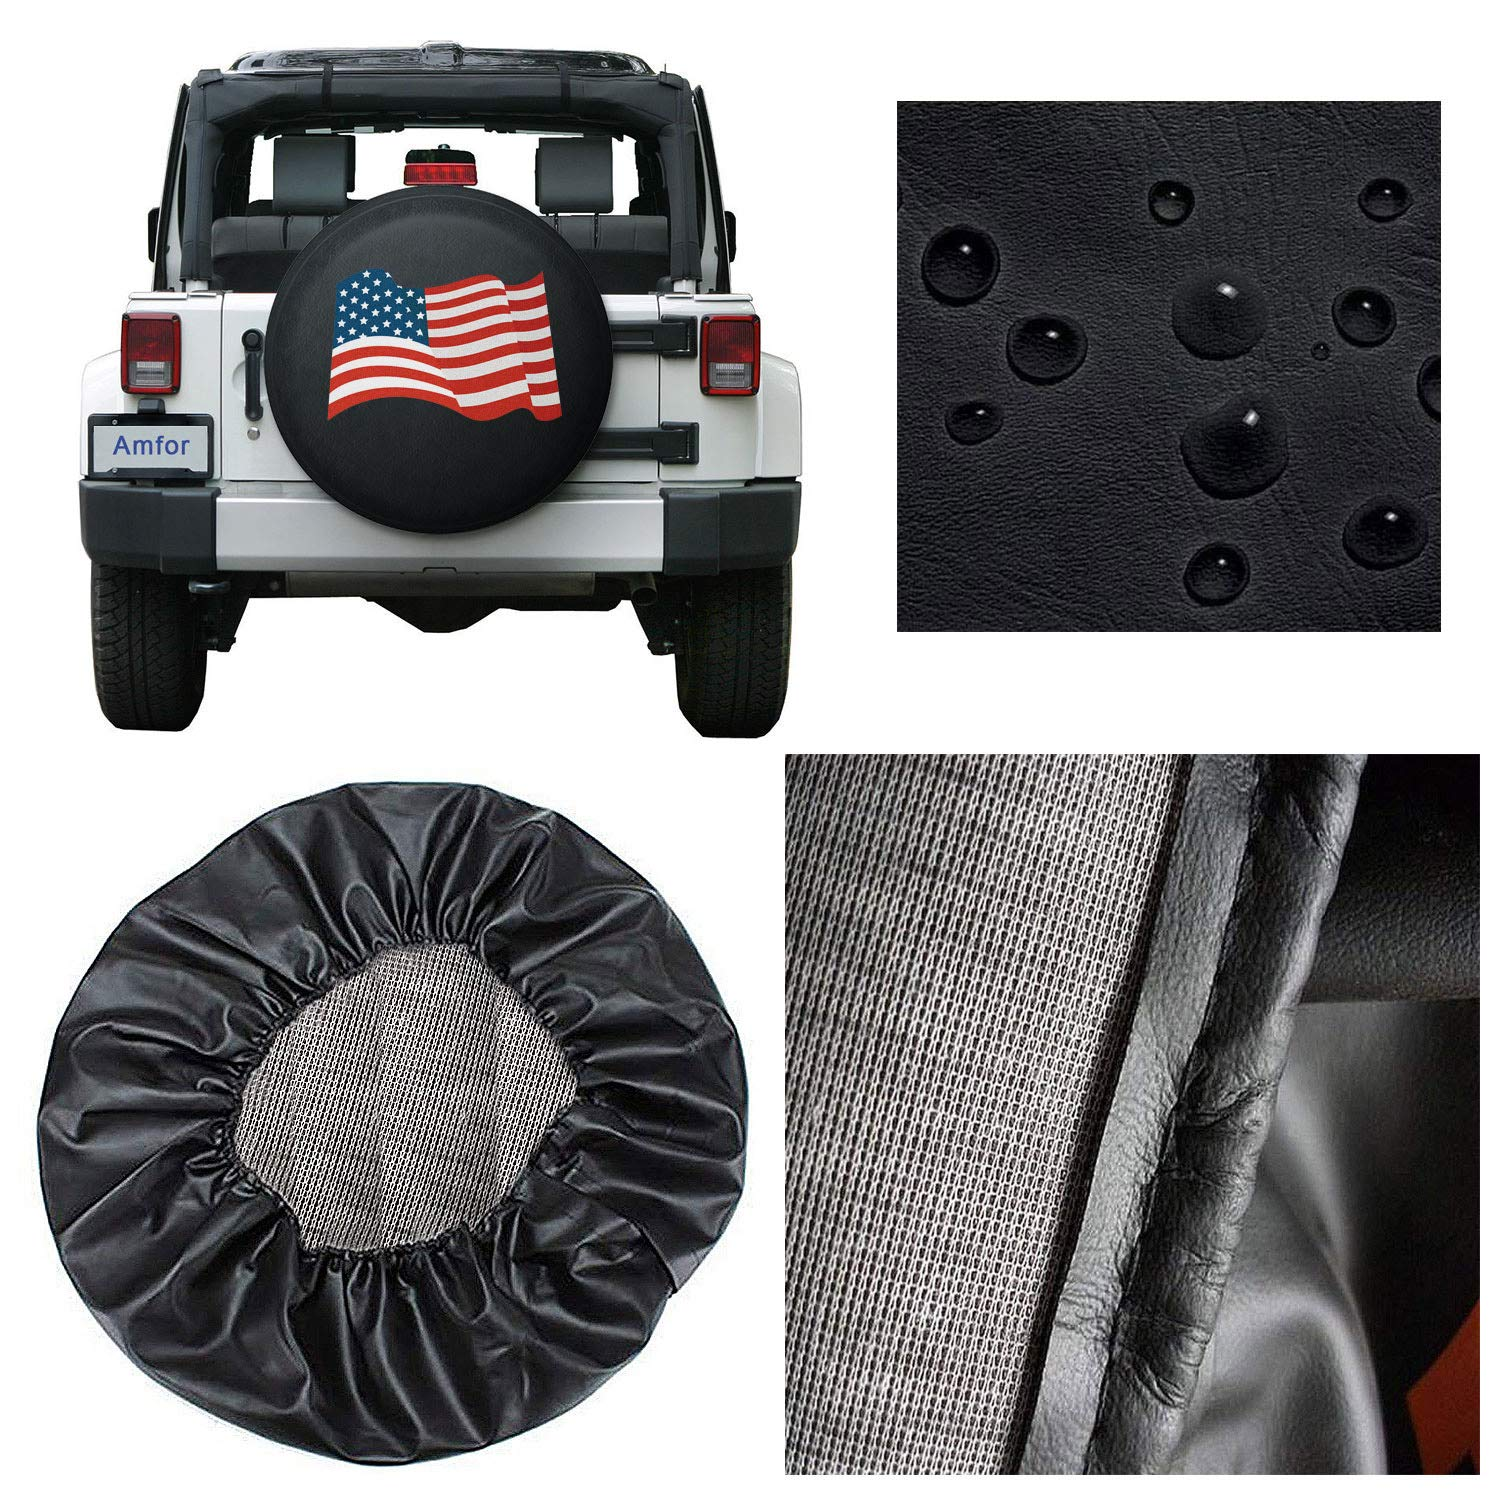 SUV White RV Trailer Amfor Spare Tire Cover Truck and Many Vehicle Universal Fit for Jeep Wheel Diameter 28-30 Weatherproof Tire Protectors